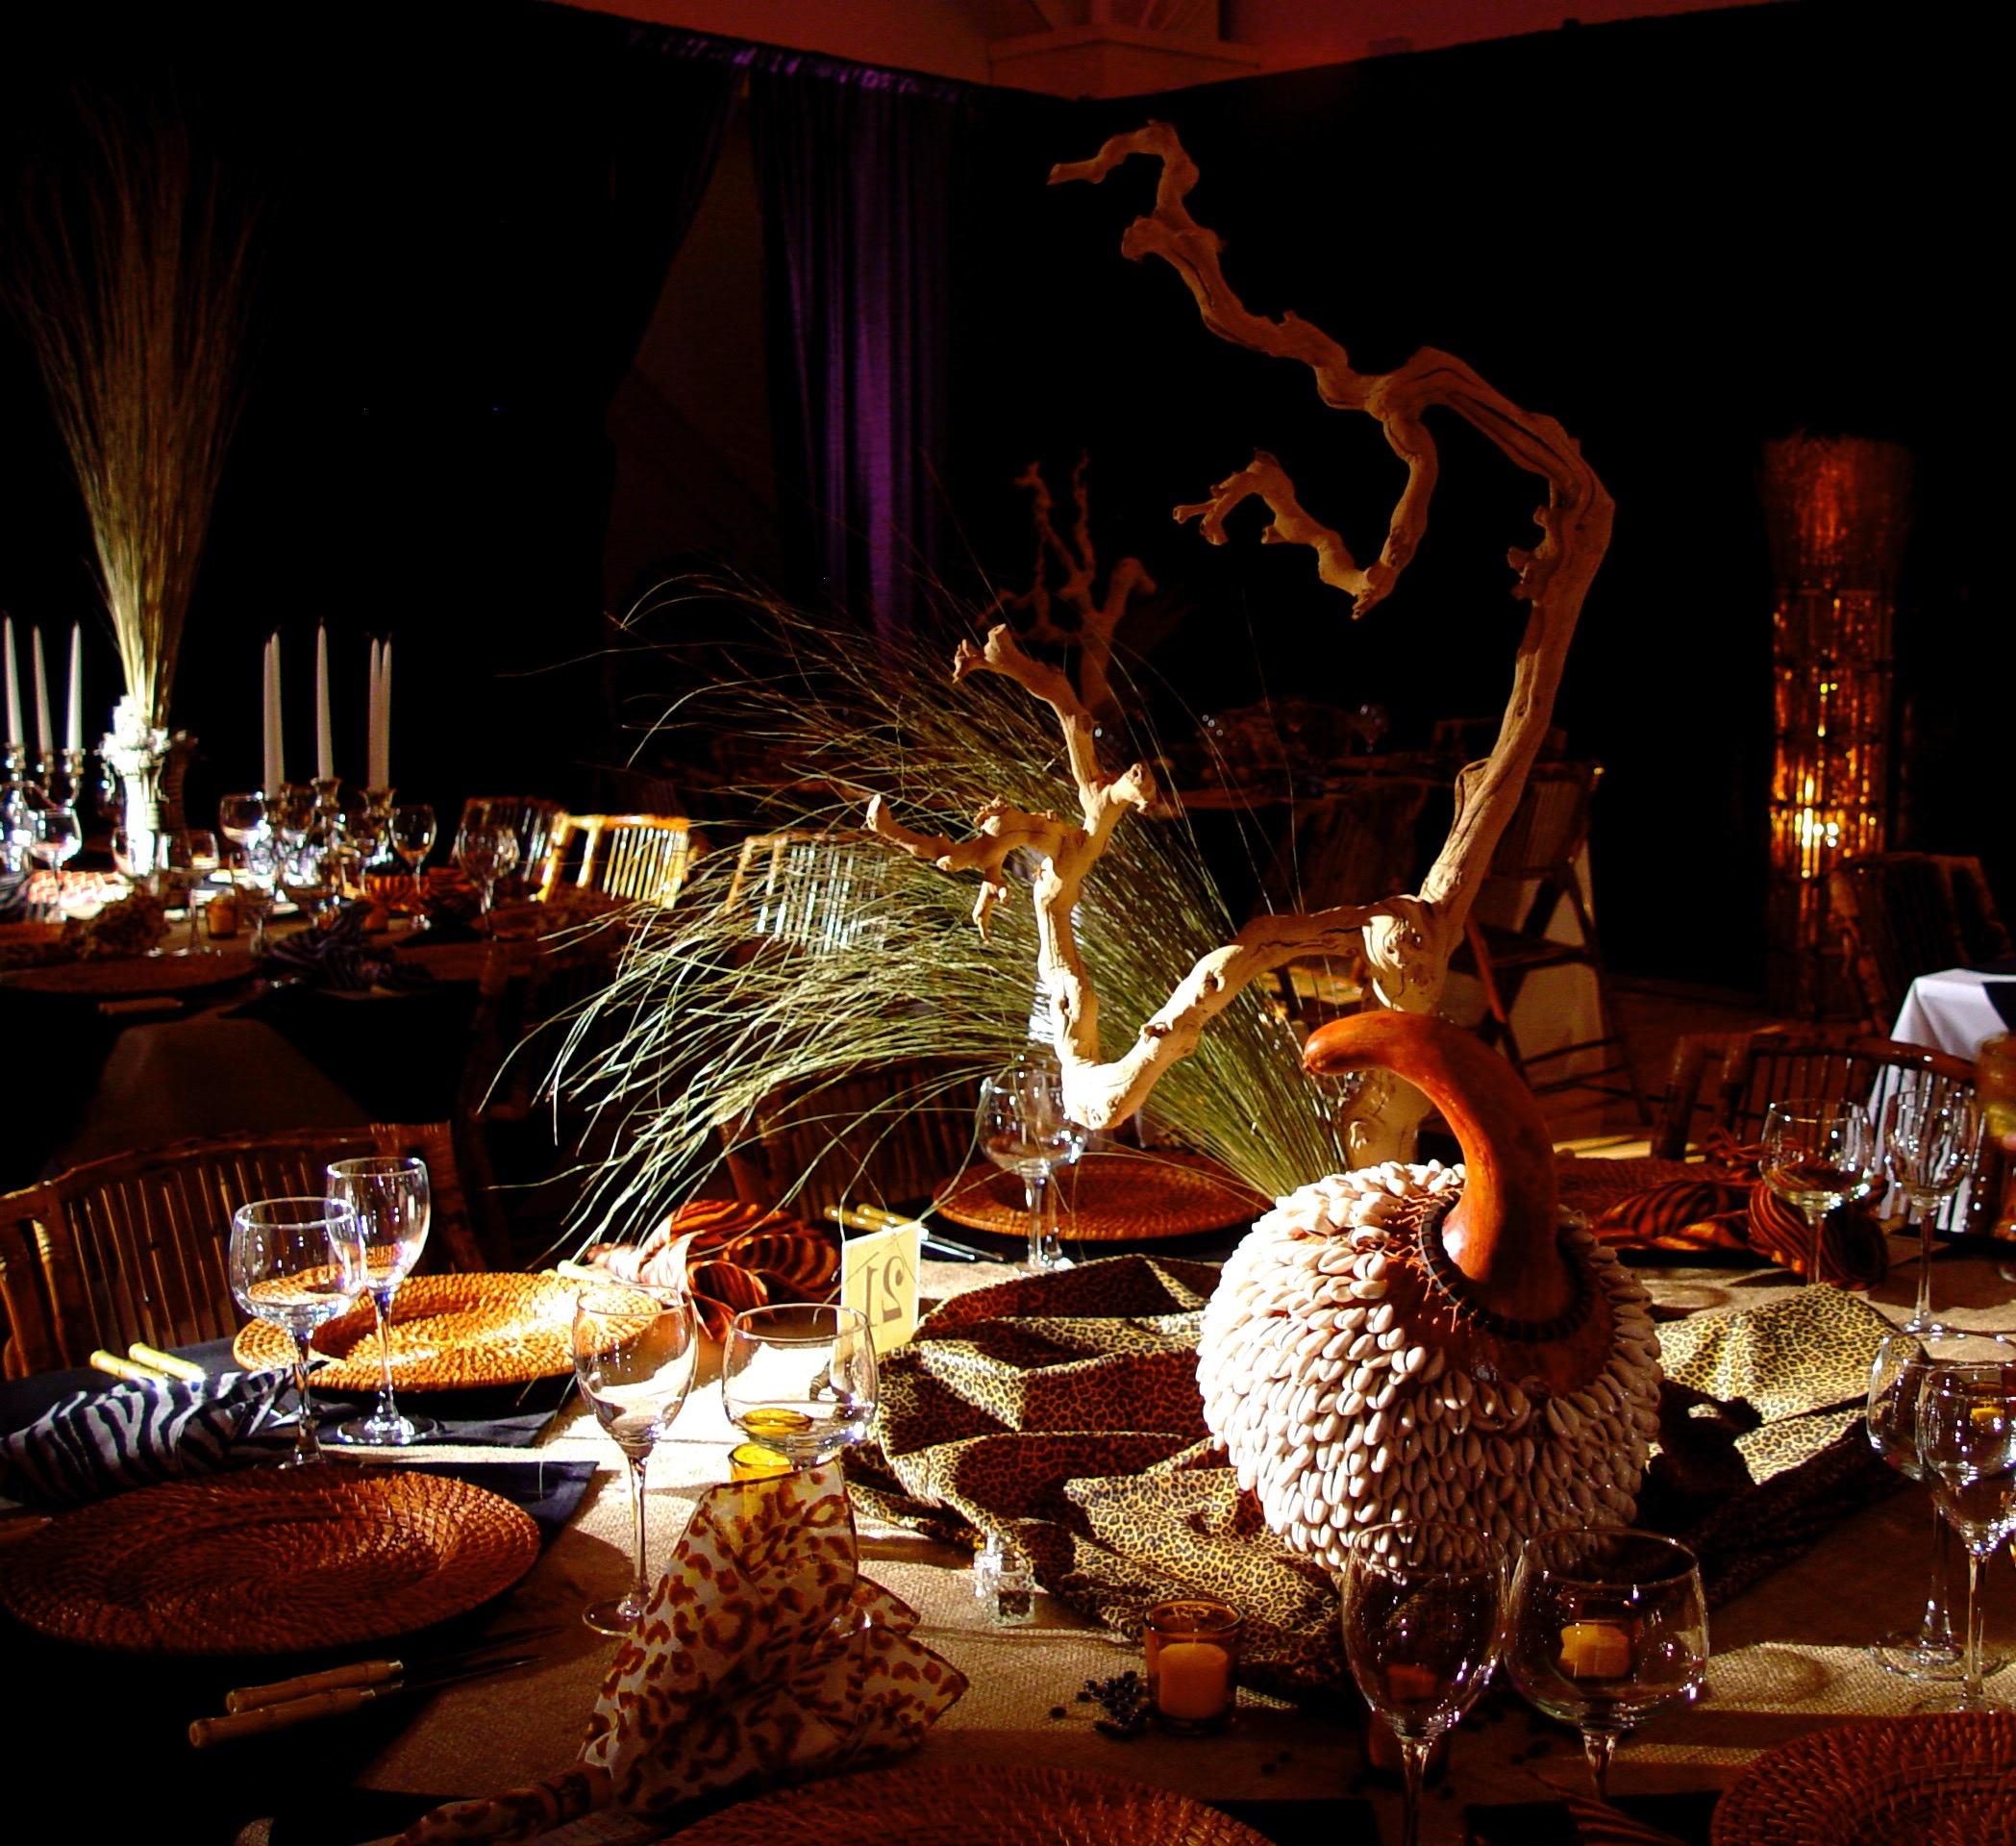 international+themed+props+centerpieces+decor+lighting+around+the+world+event+rentals+rental+theme+party+nj+ny+pa+eggsotic+events.jpeg